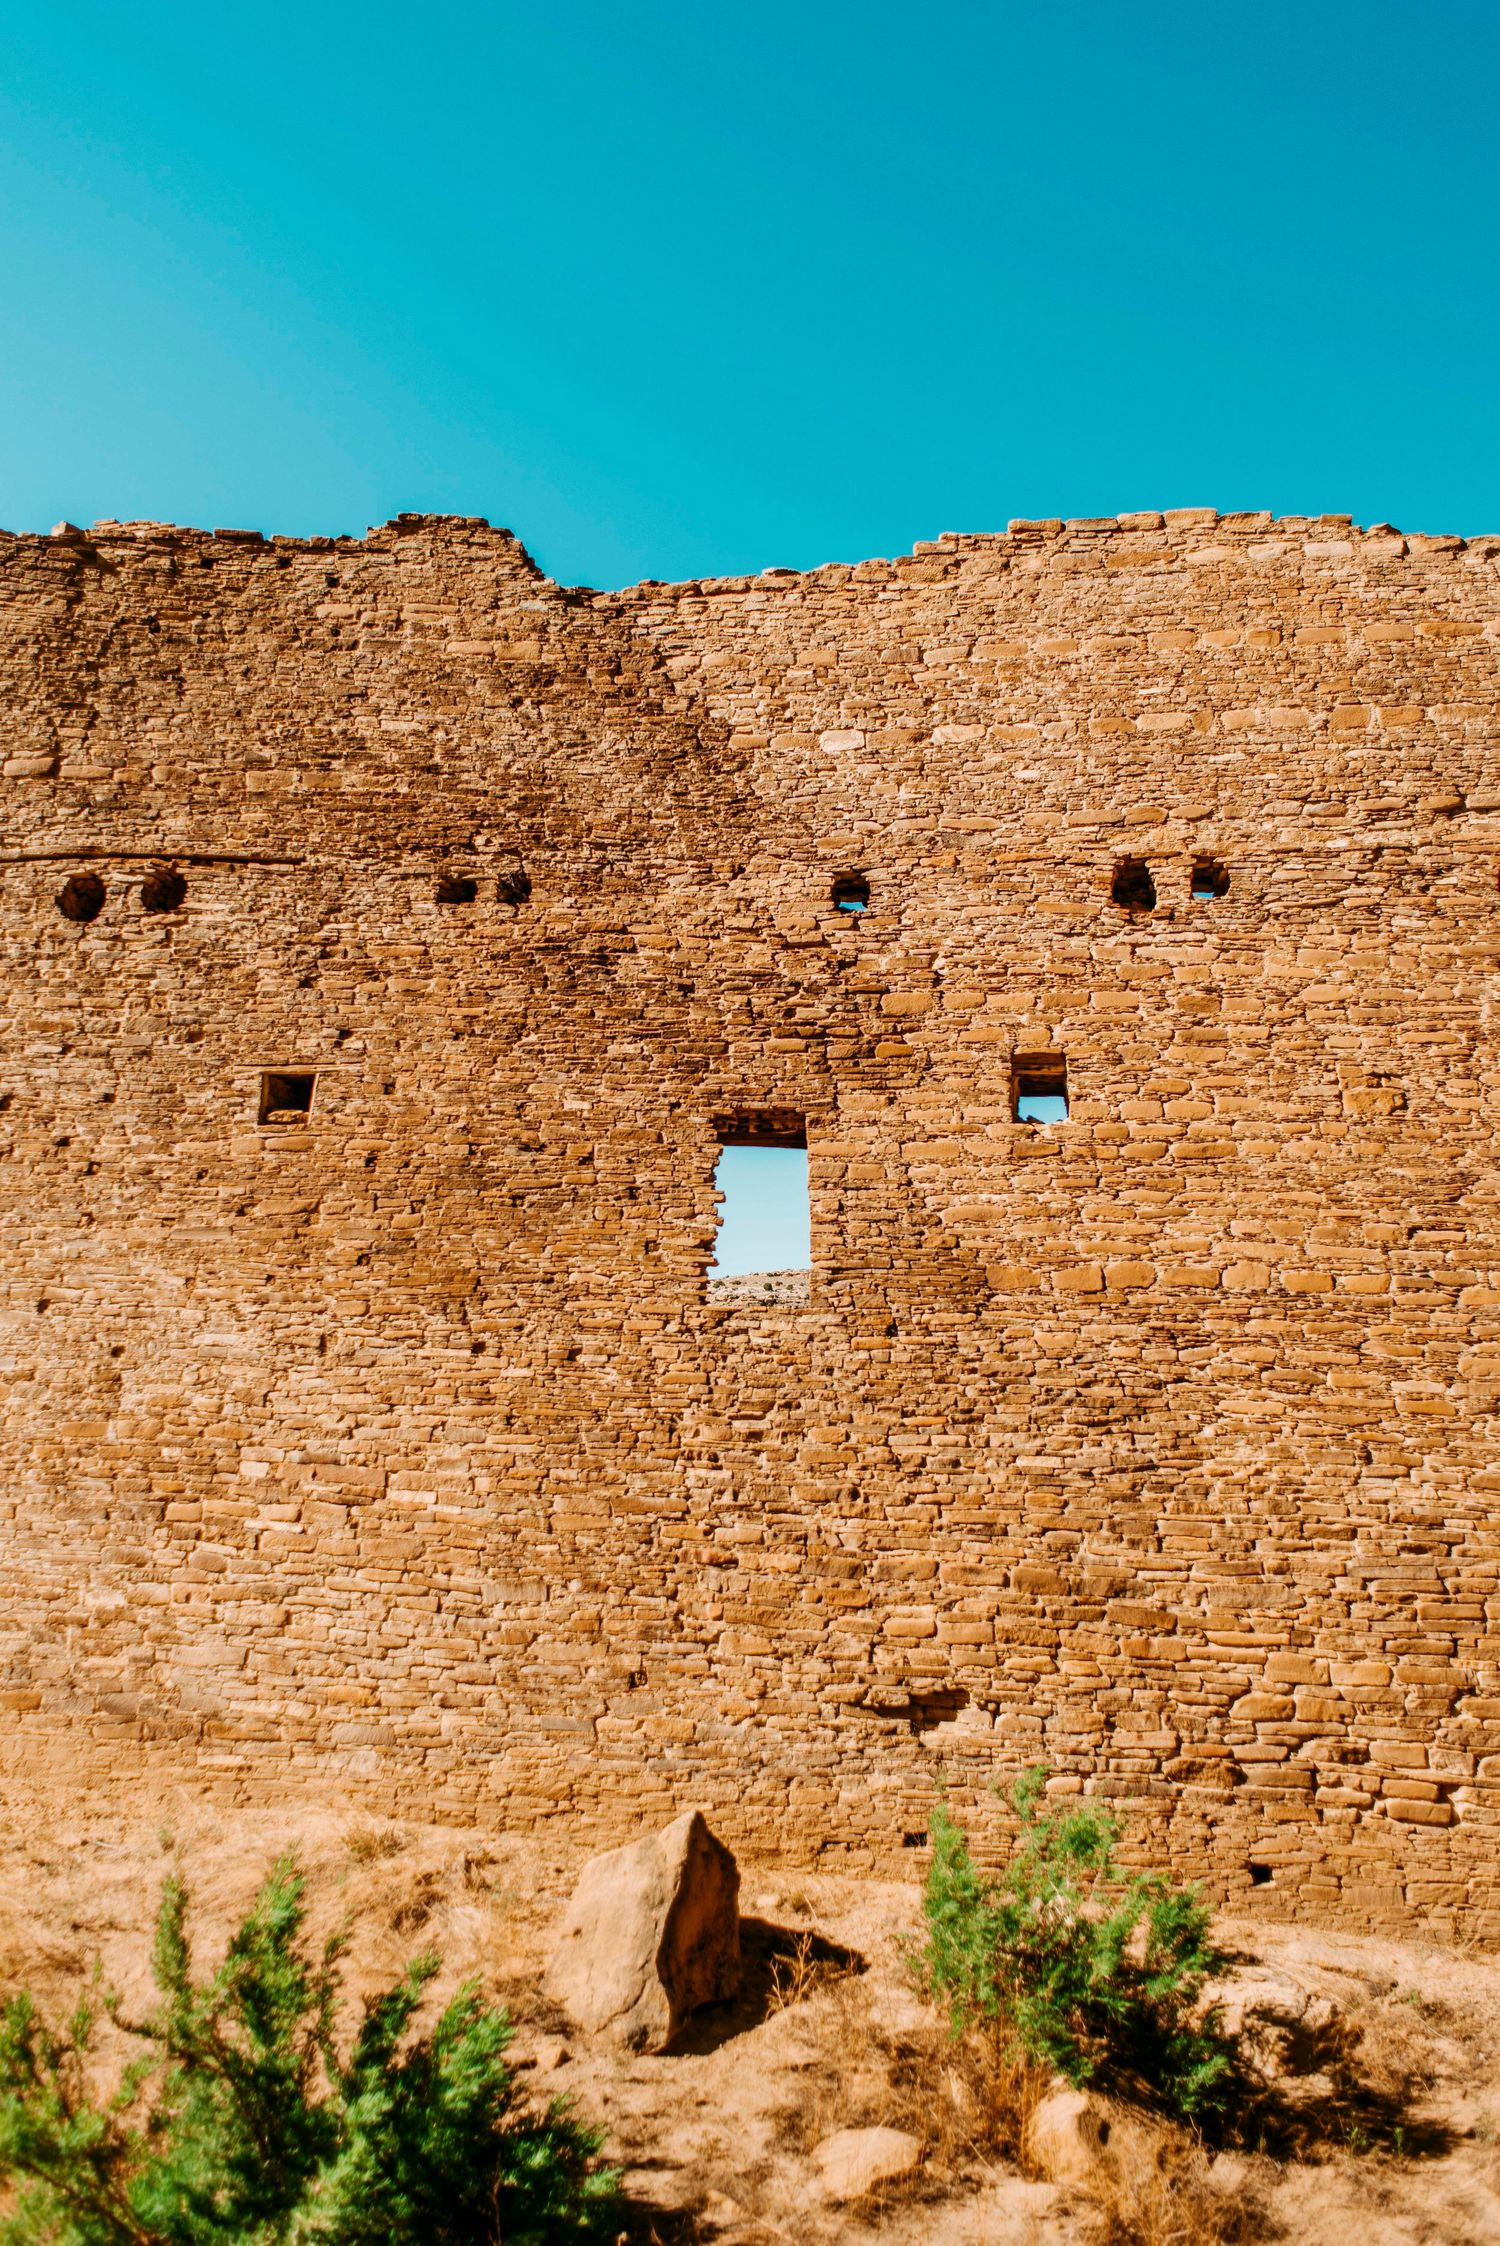 Chaco Culture National Historic Park